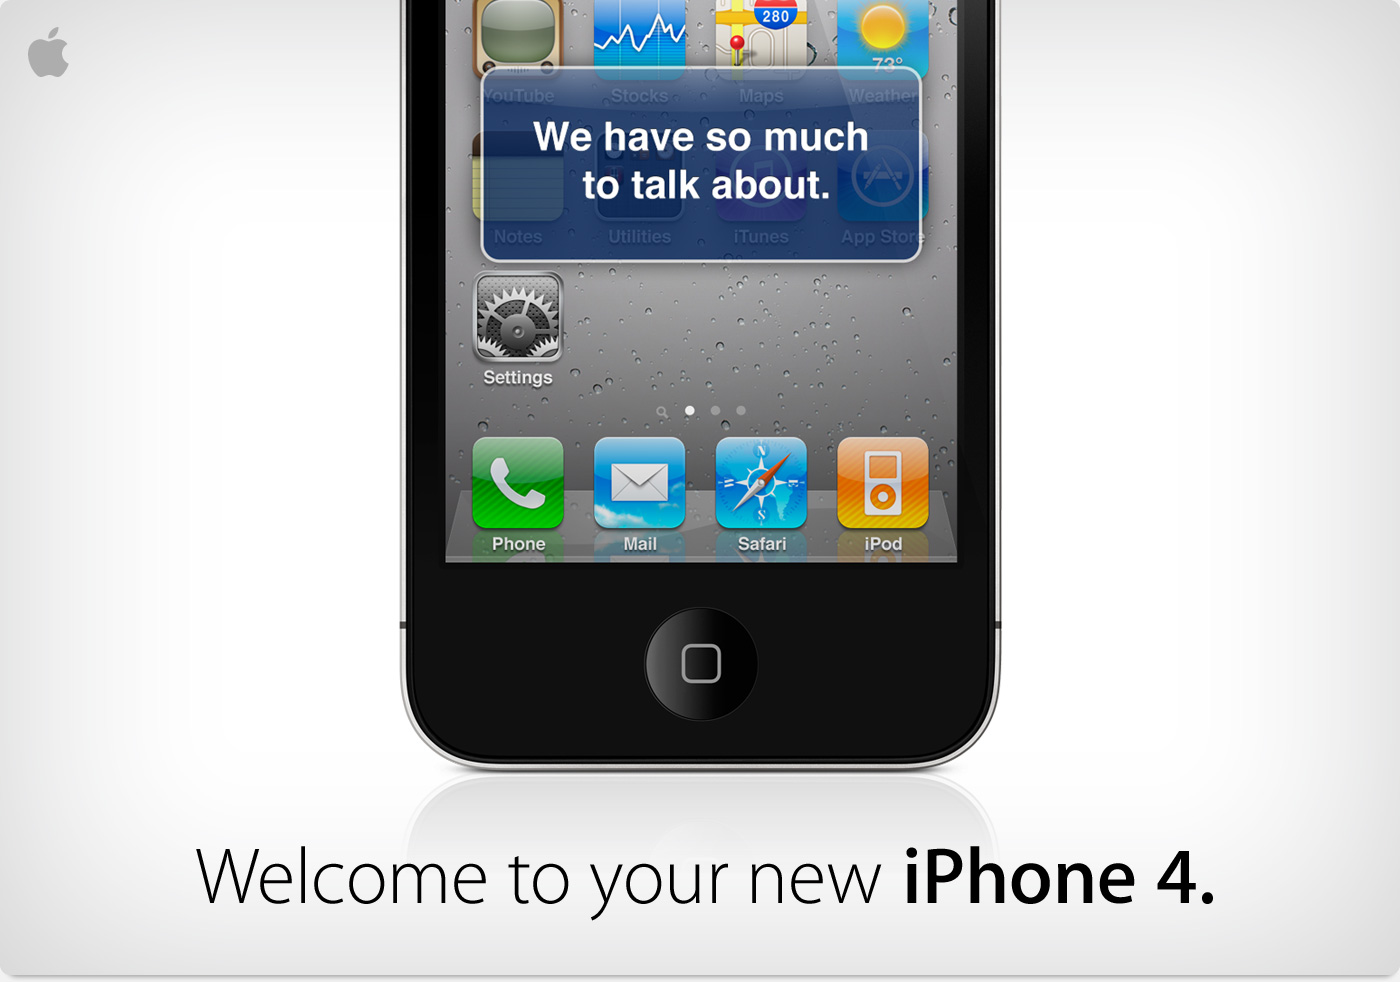 Welcome to your new iPhone 4.